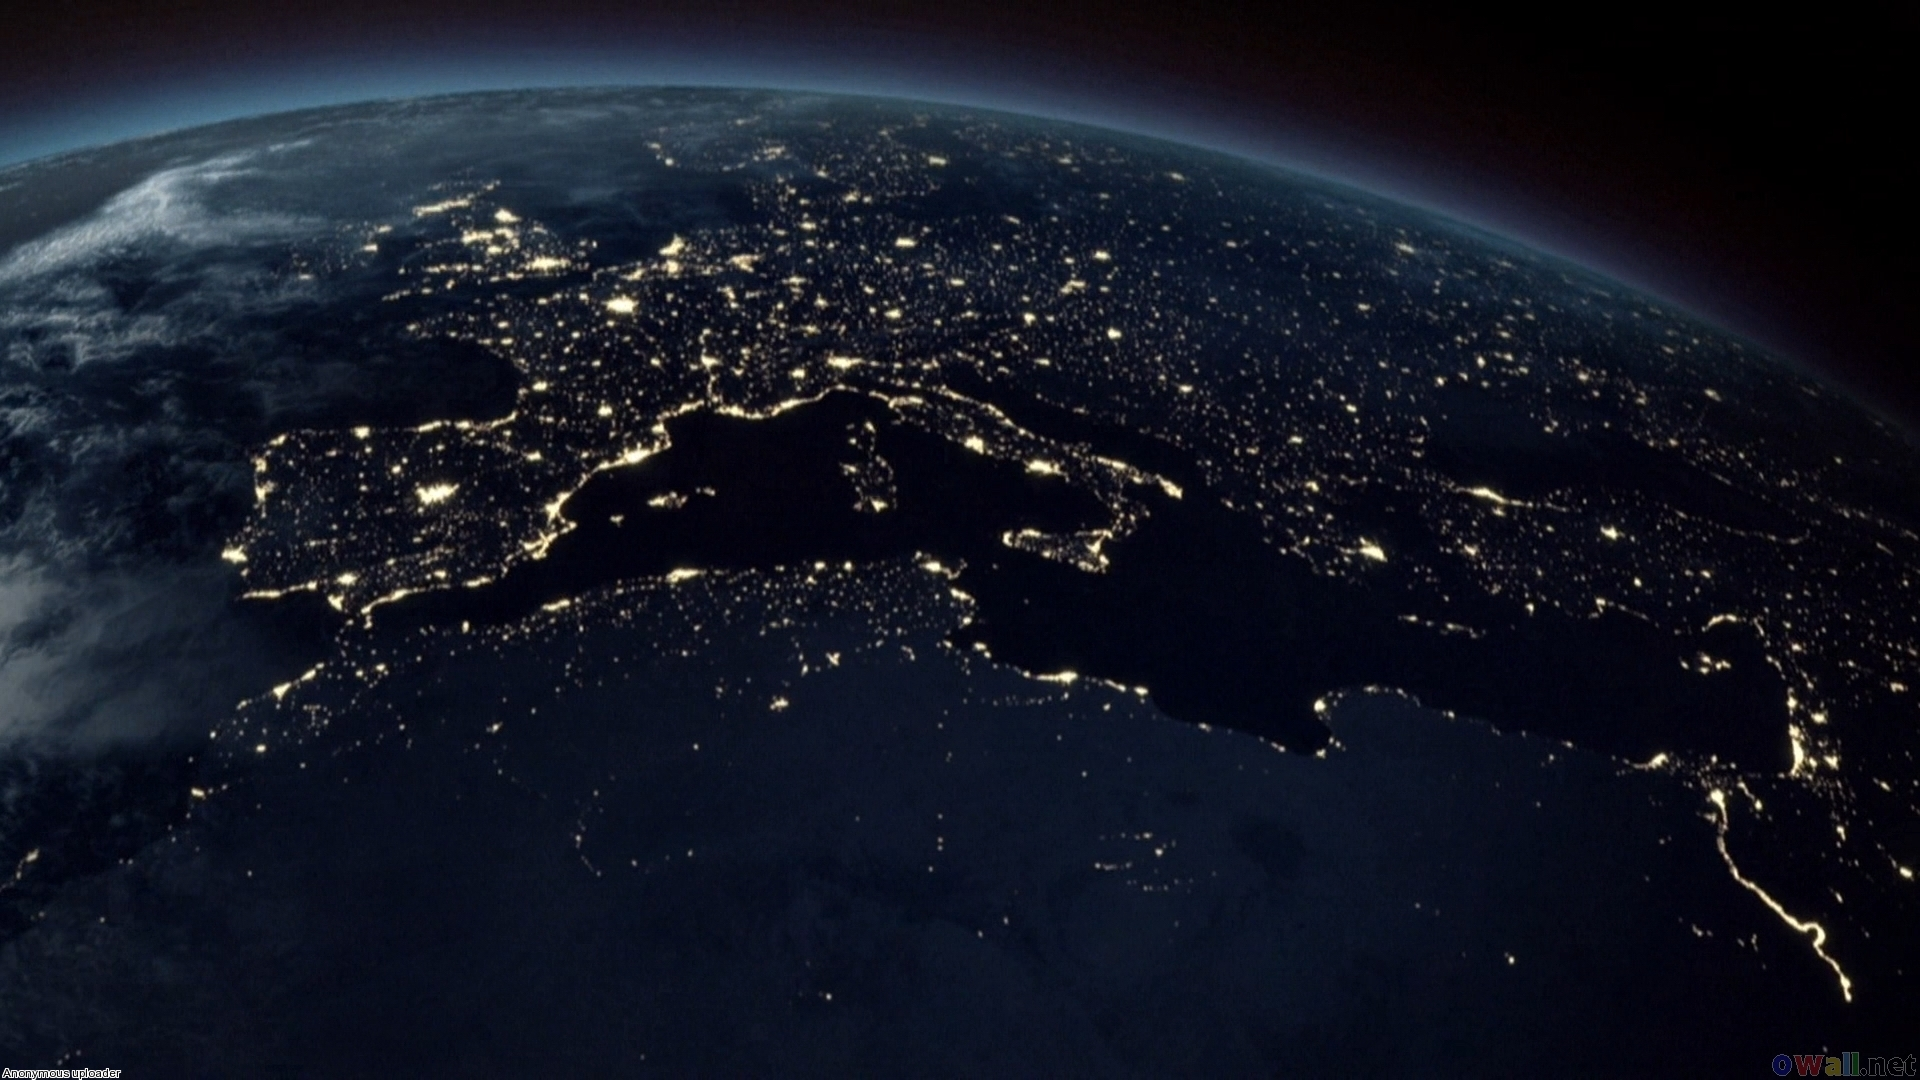 planet earth from space at night - photo #4